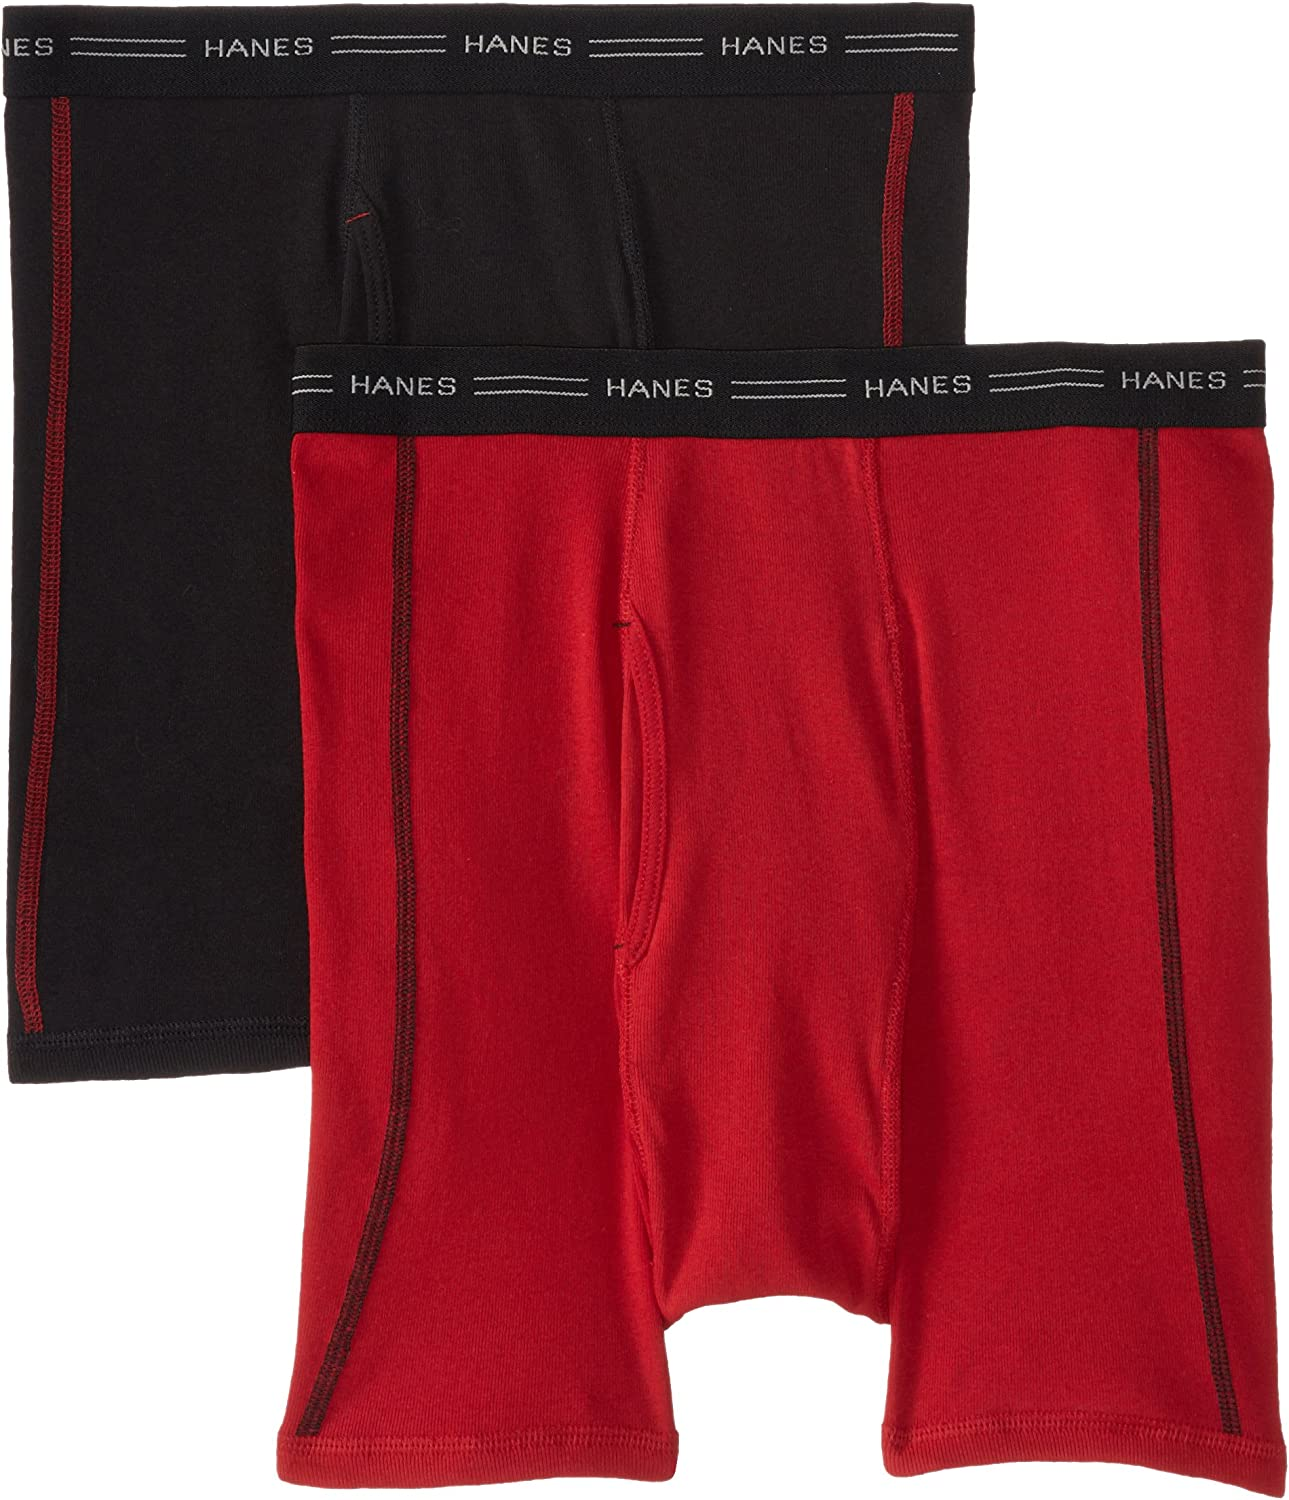 Hanes Men's 2-Pack Cool DRI No Ride Up Boxer Briefs